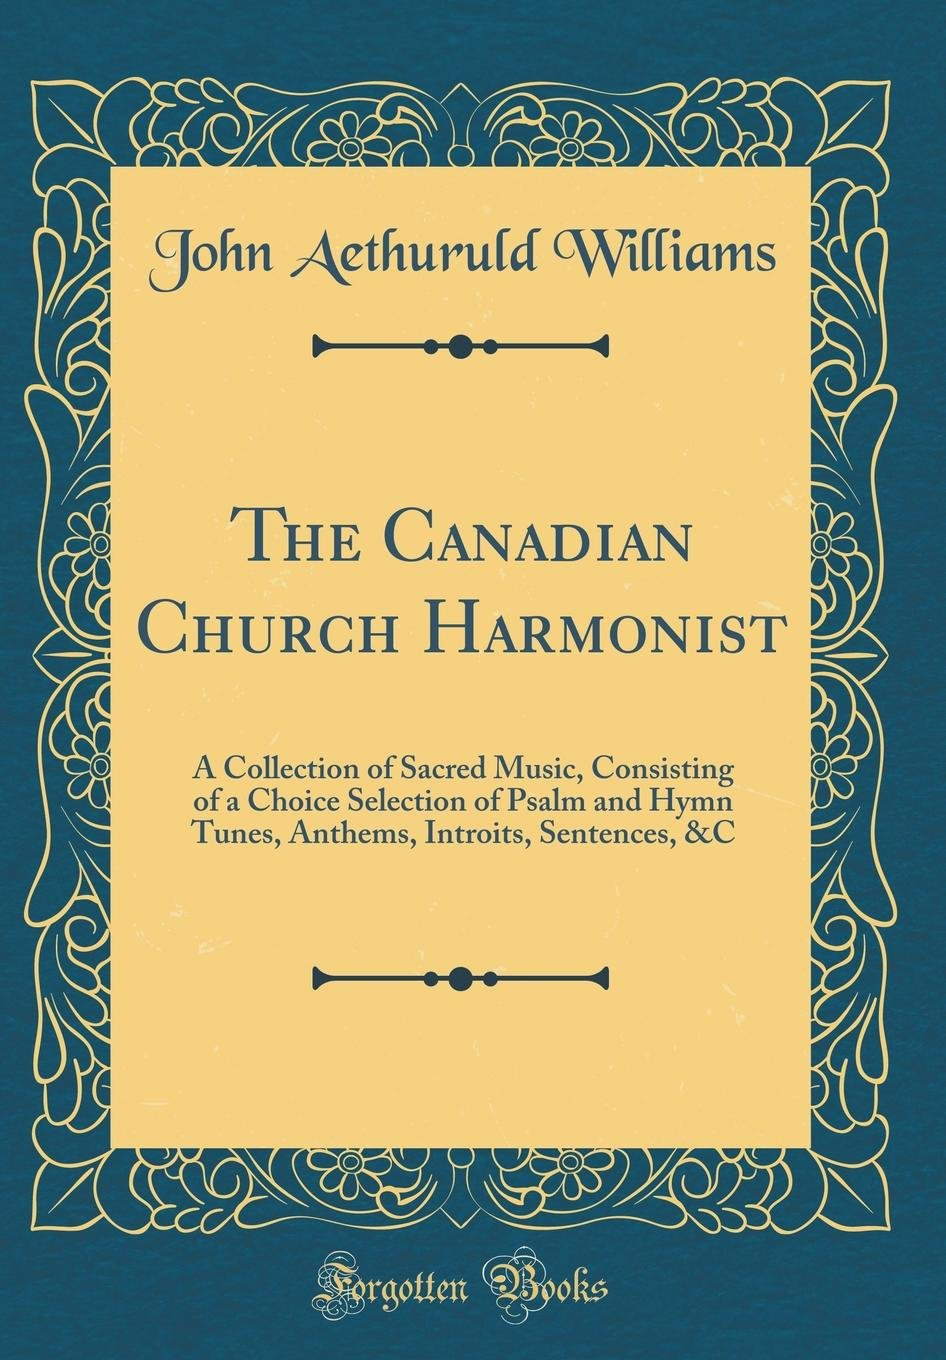 The Canadian Church Harmonist: A Collection of Sacred Music, Consisting of a Choice Selection of Psalm and Hymn Tunes, Anthems, Introits, Sentences, &c (Classic Reprint) Text fb2 ebook